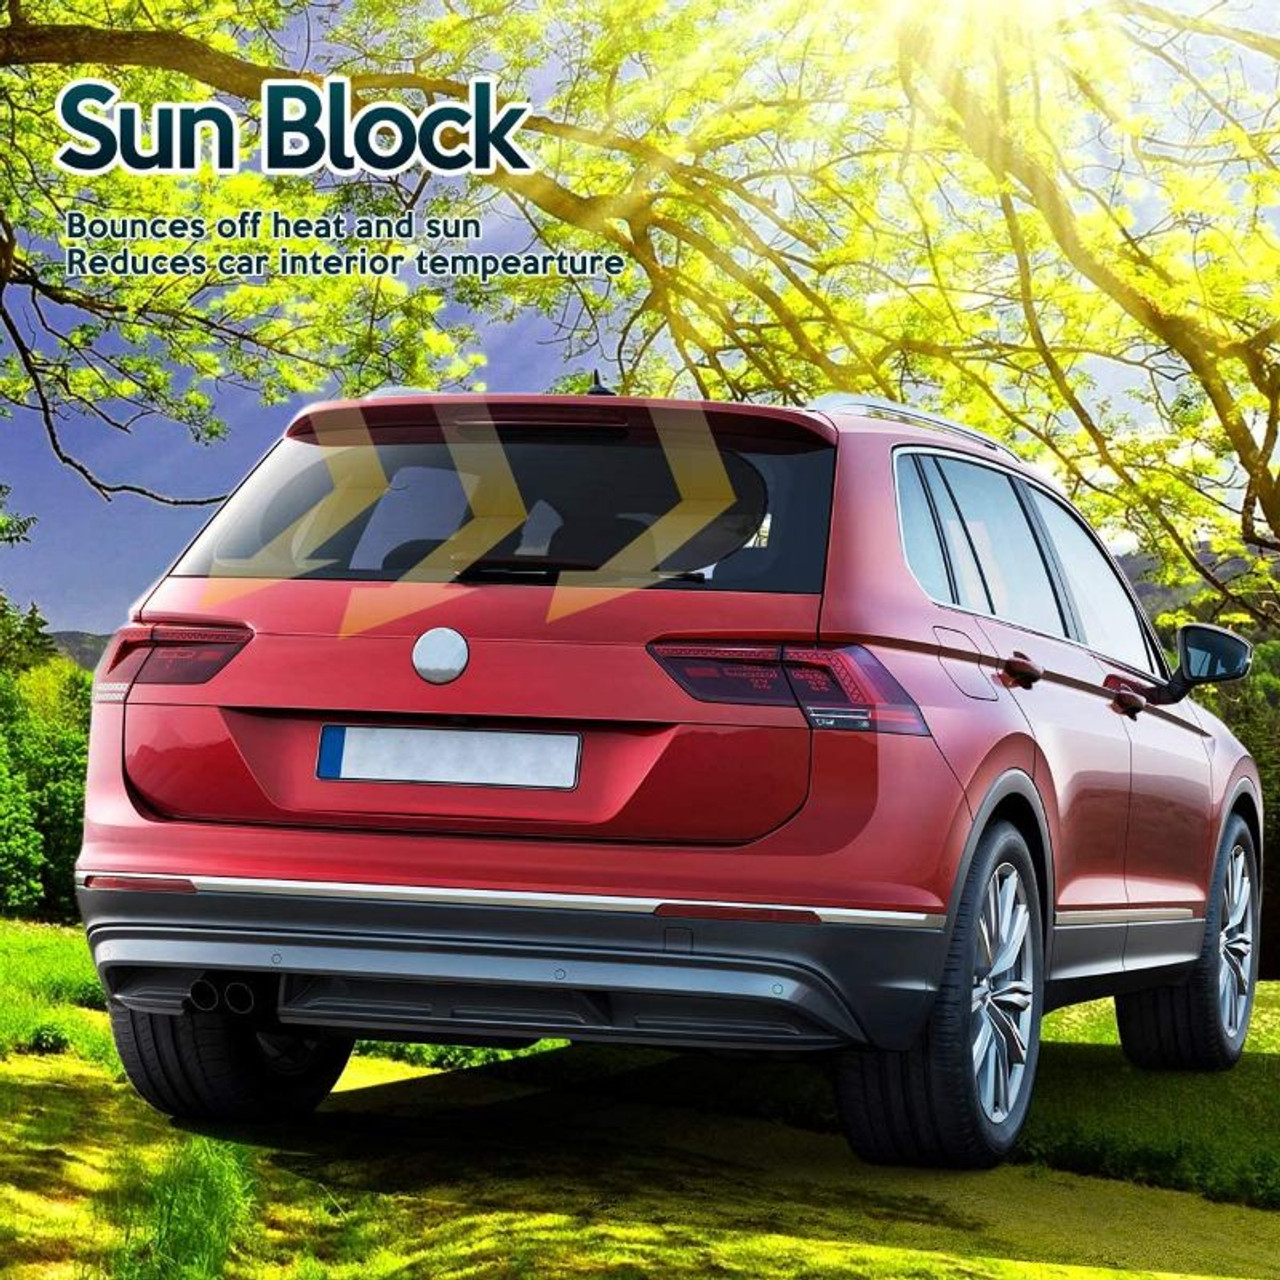 Universal Car Sun Cling On Shade-No Suction Cups Needed